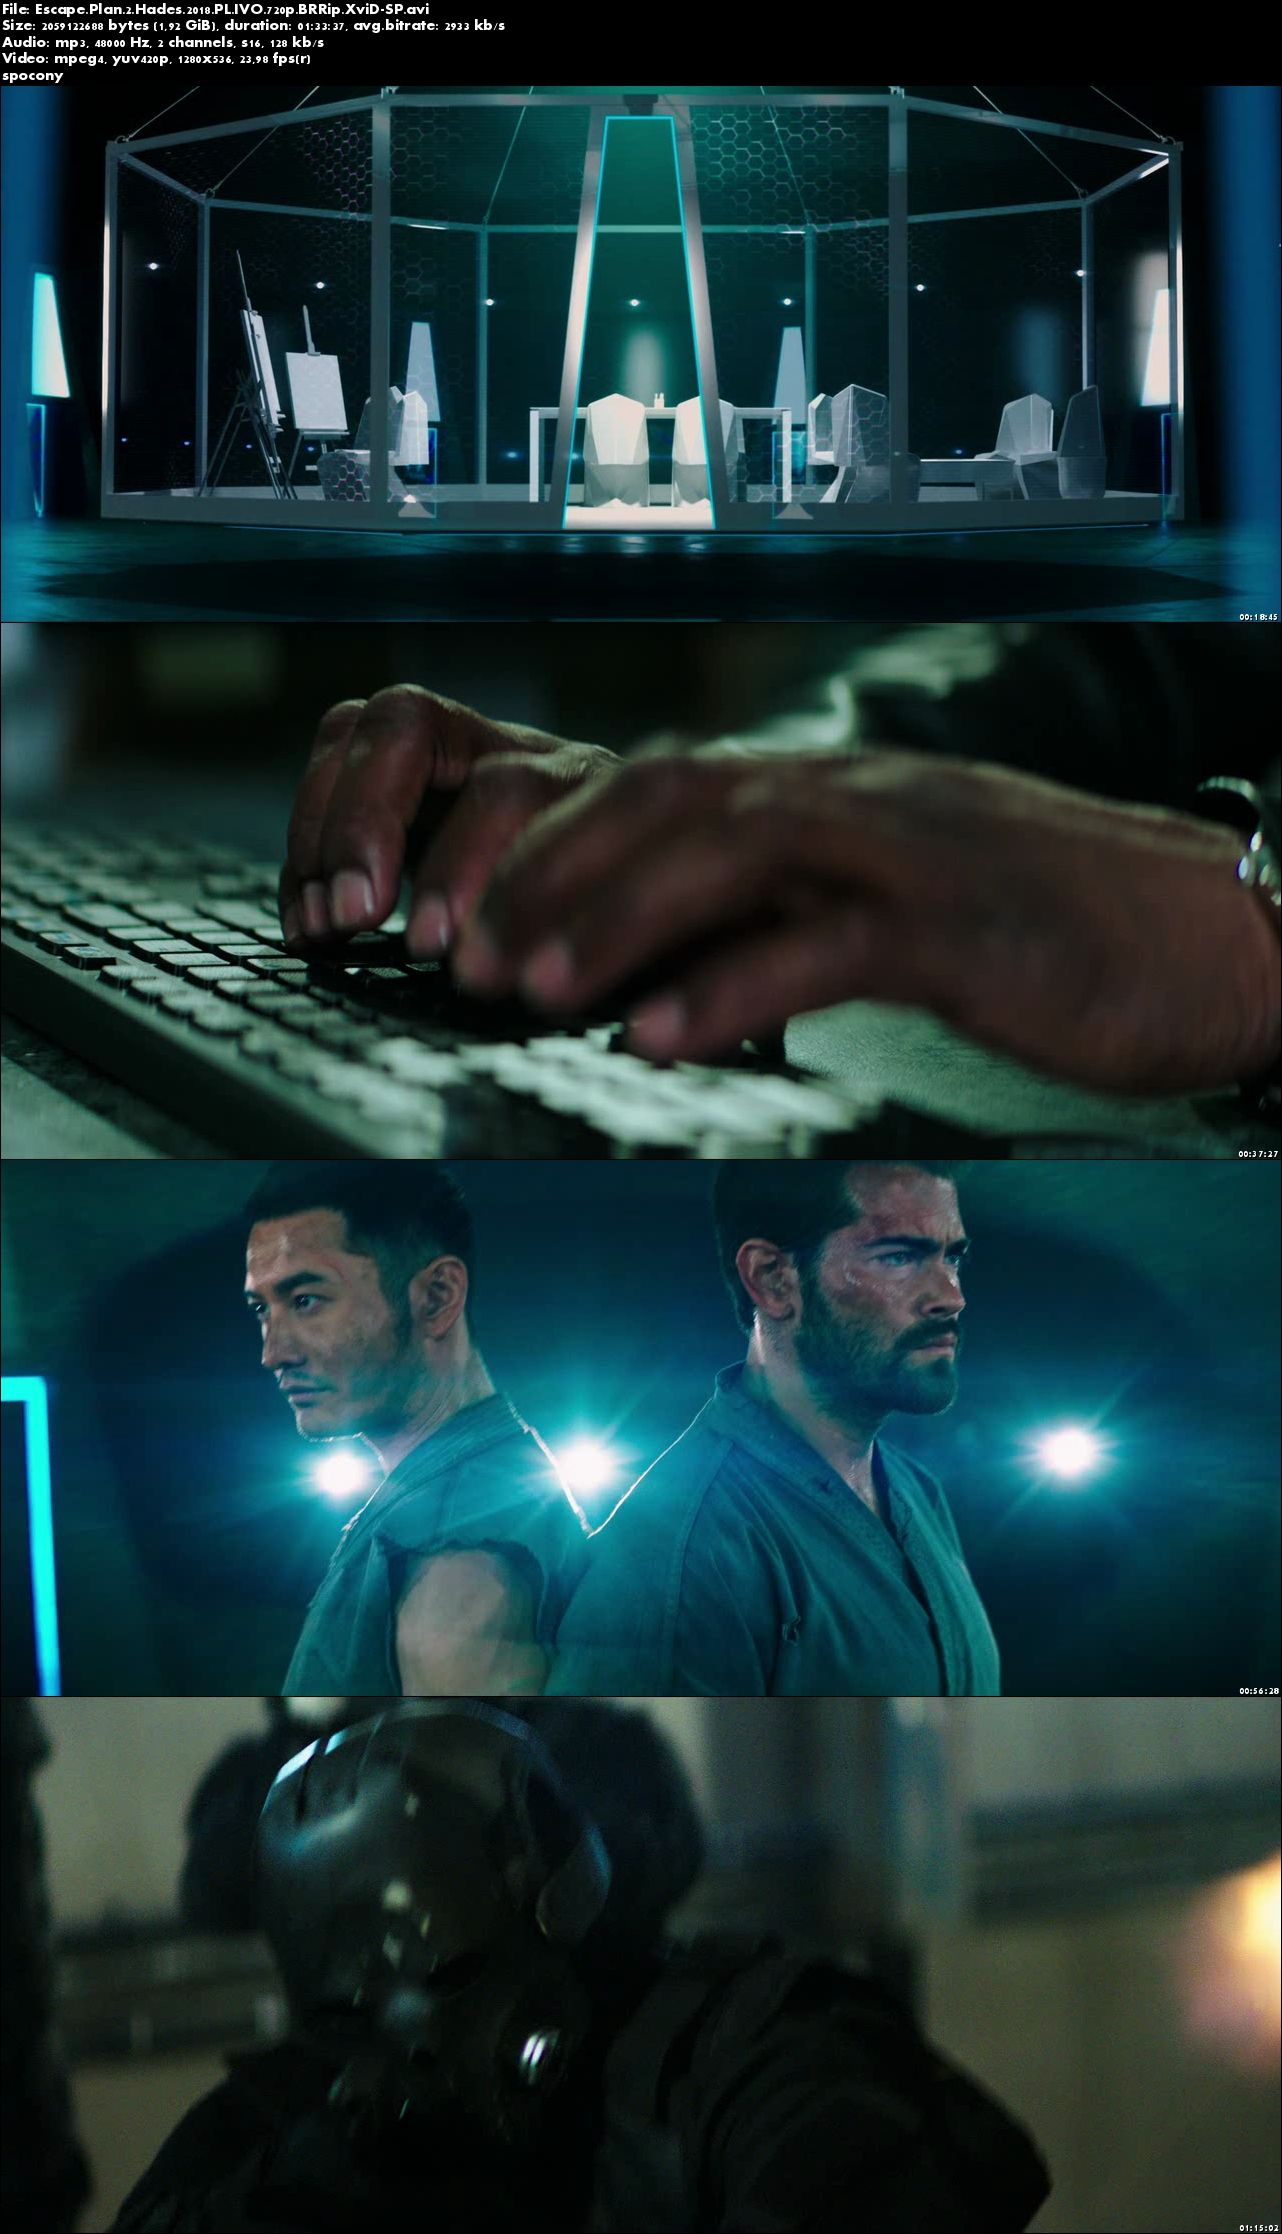 Escape Plan 2: Hades (2018) PL.IVO.720p.BRRip.XviD-SP [Lektor PL-IVO]